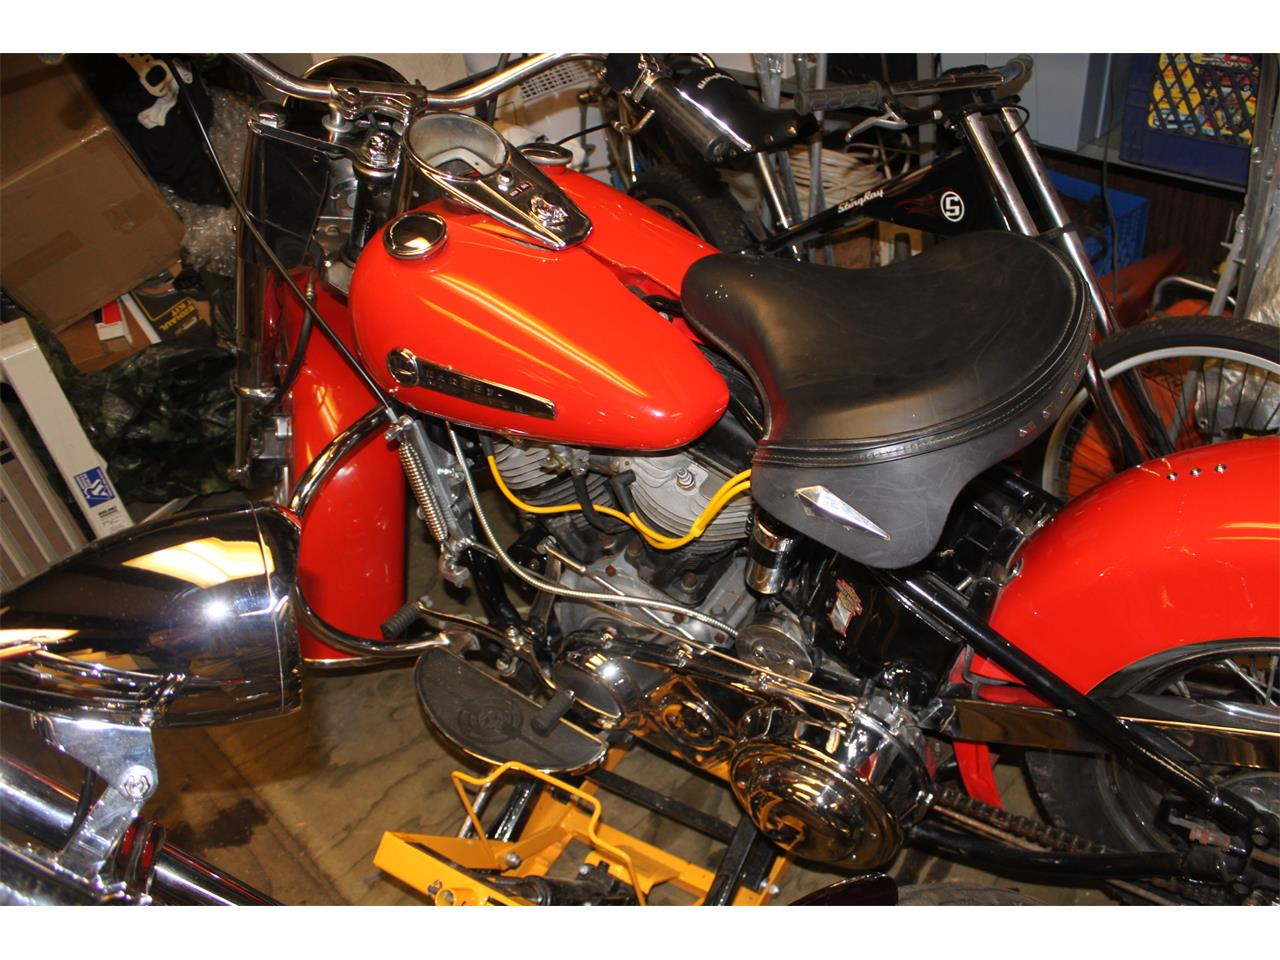 1950 Harley-Davidson Motorcycle for sale in Carnation, WA – photo 14